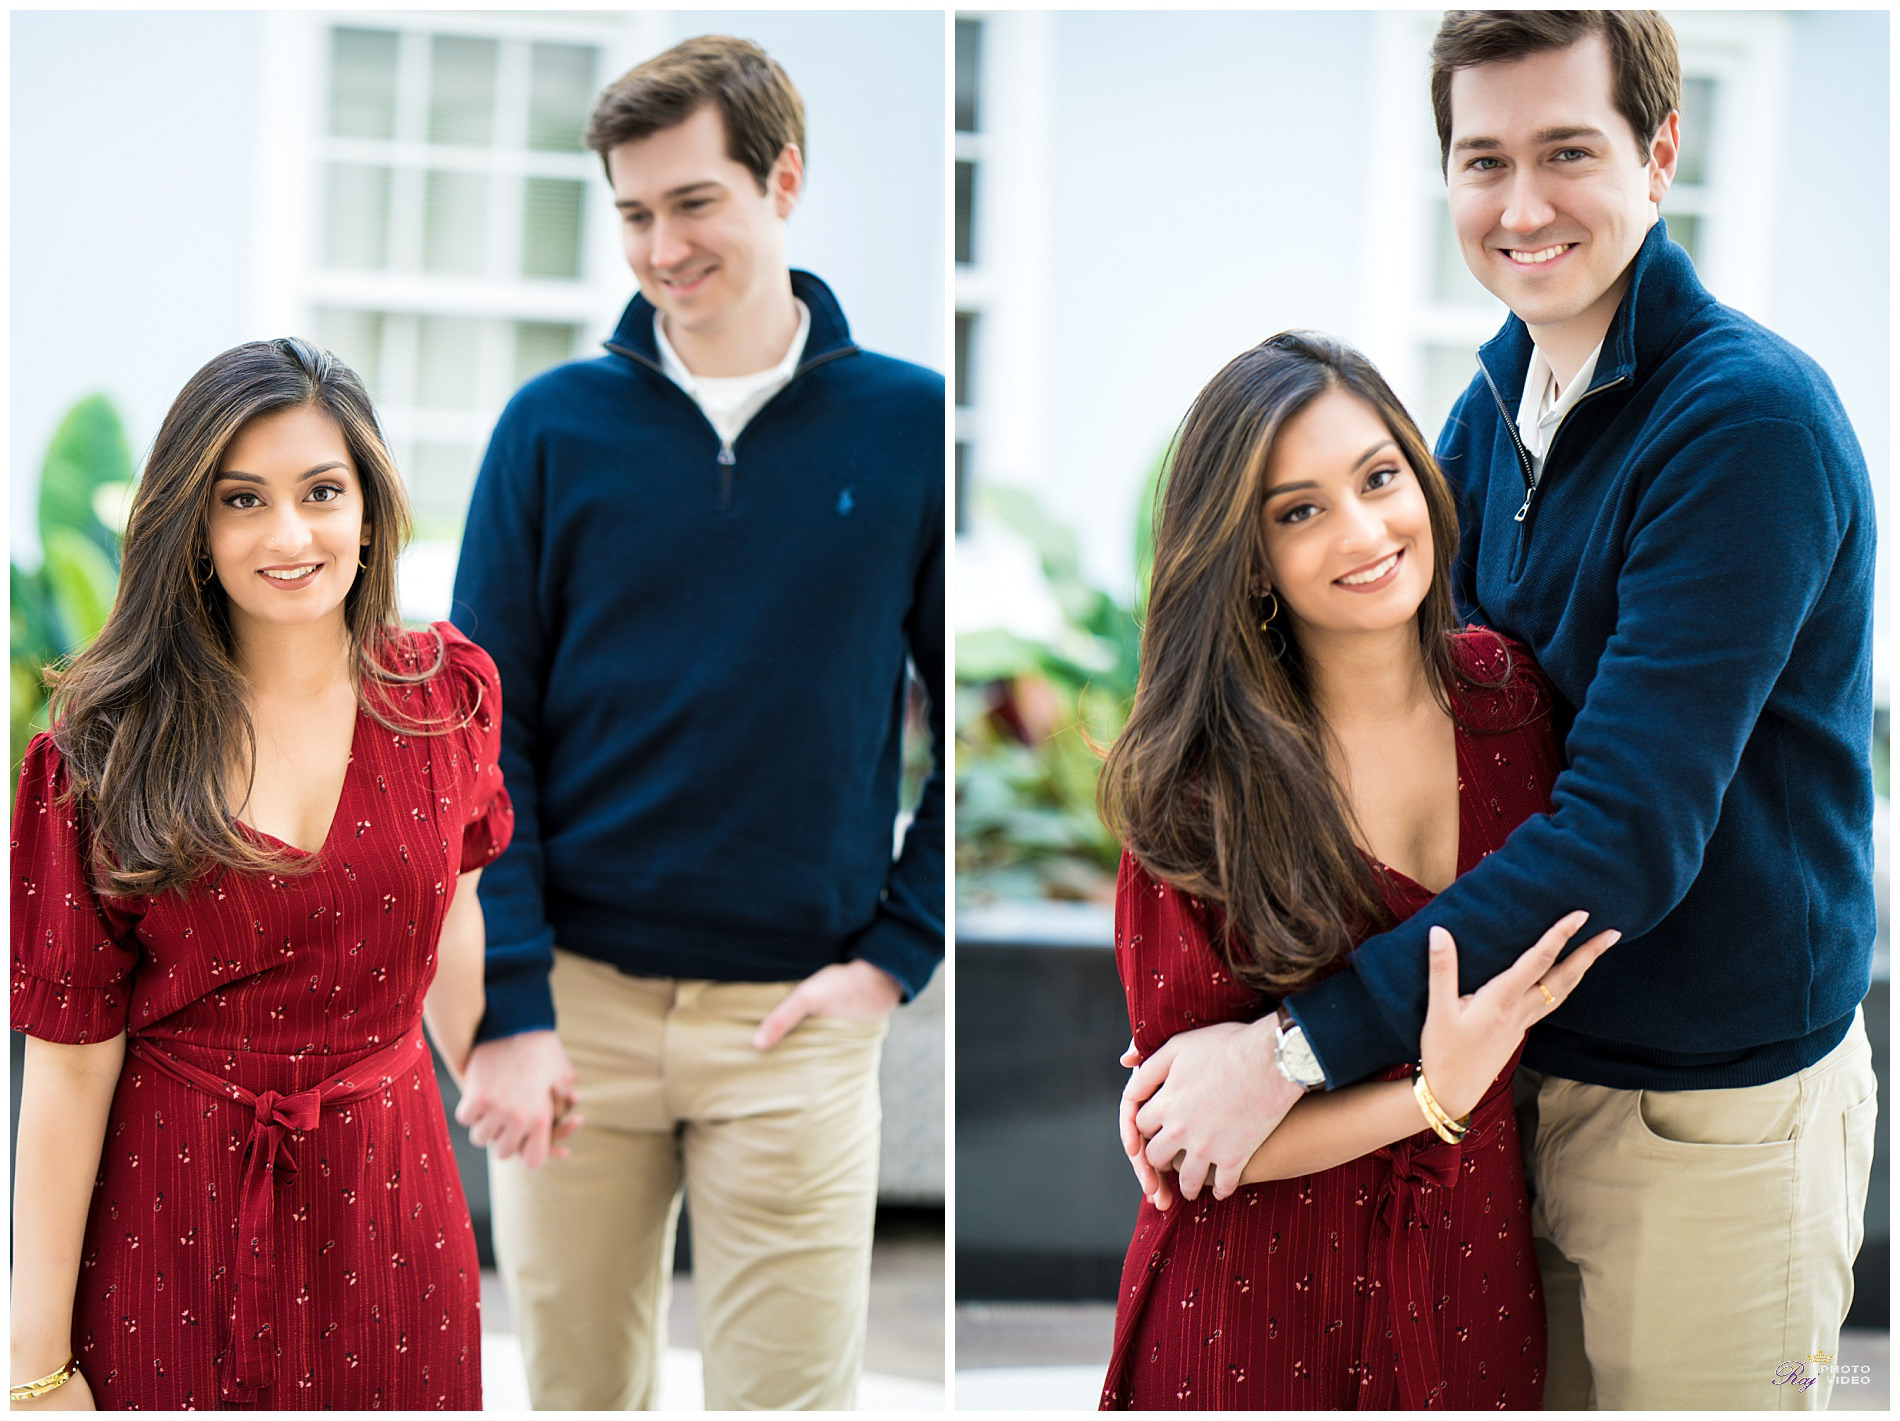 The-College-of-New-Jersey-Engagement-Shoot-Prerna-Kevin9.jpg